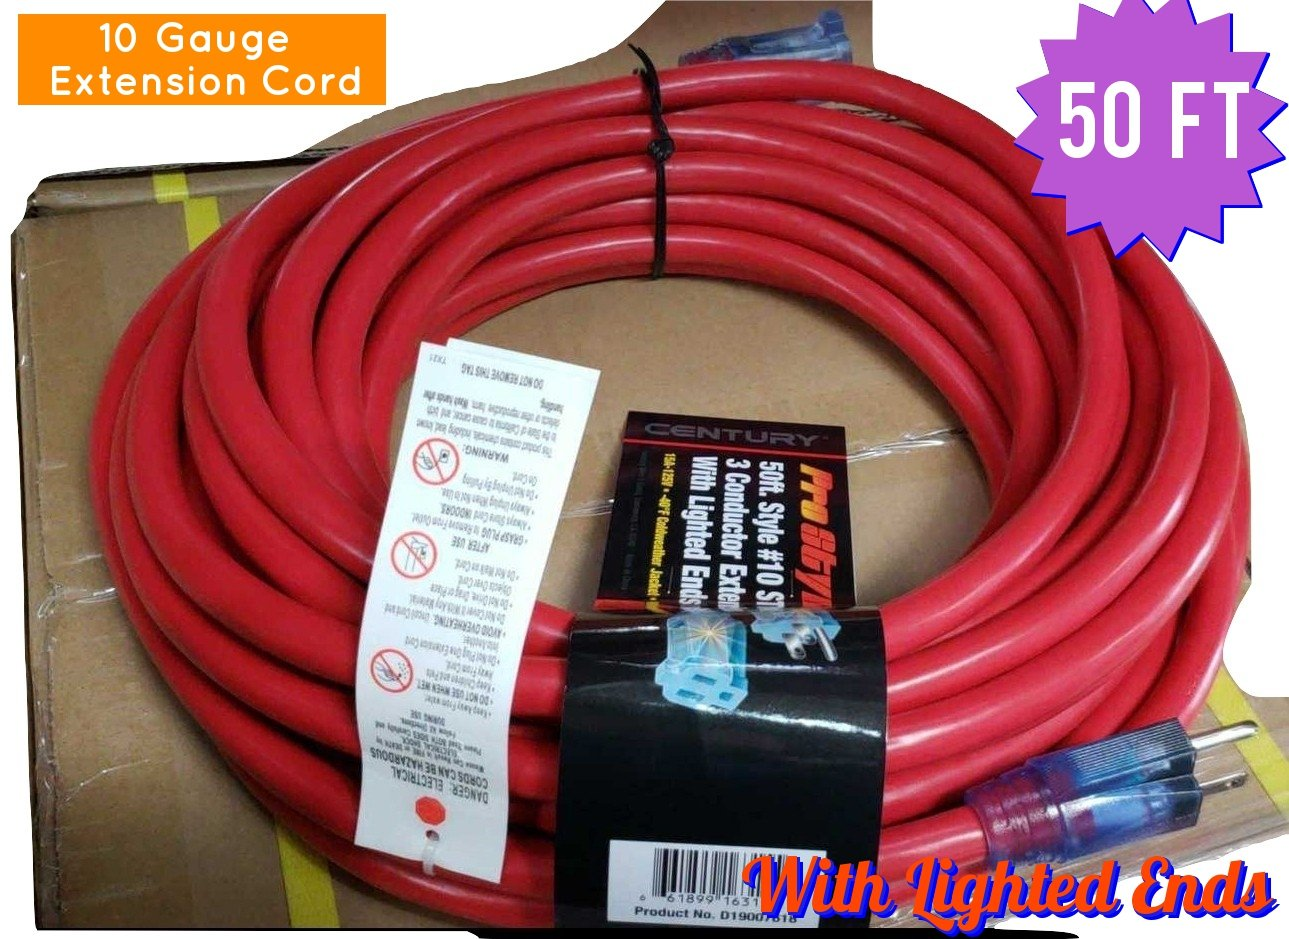 Century Contractor Grade 50 Ft 10 Gauge Power Extension Cord 3 Electrical Wiring Materials And Devices Plug Outdoor Great For Commercial Use Gardening